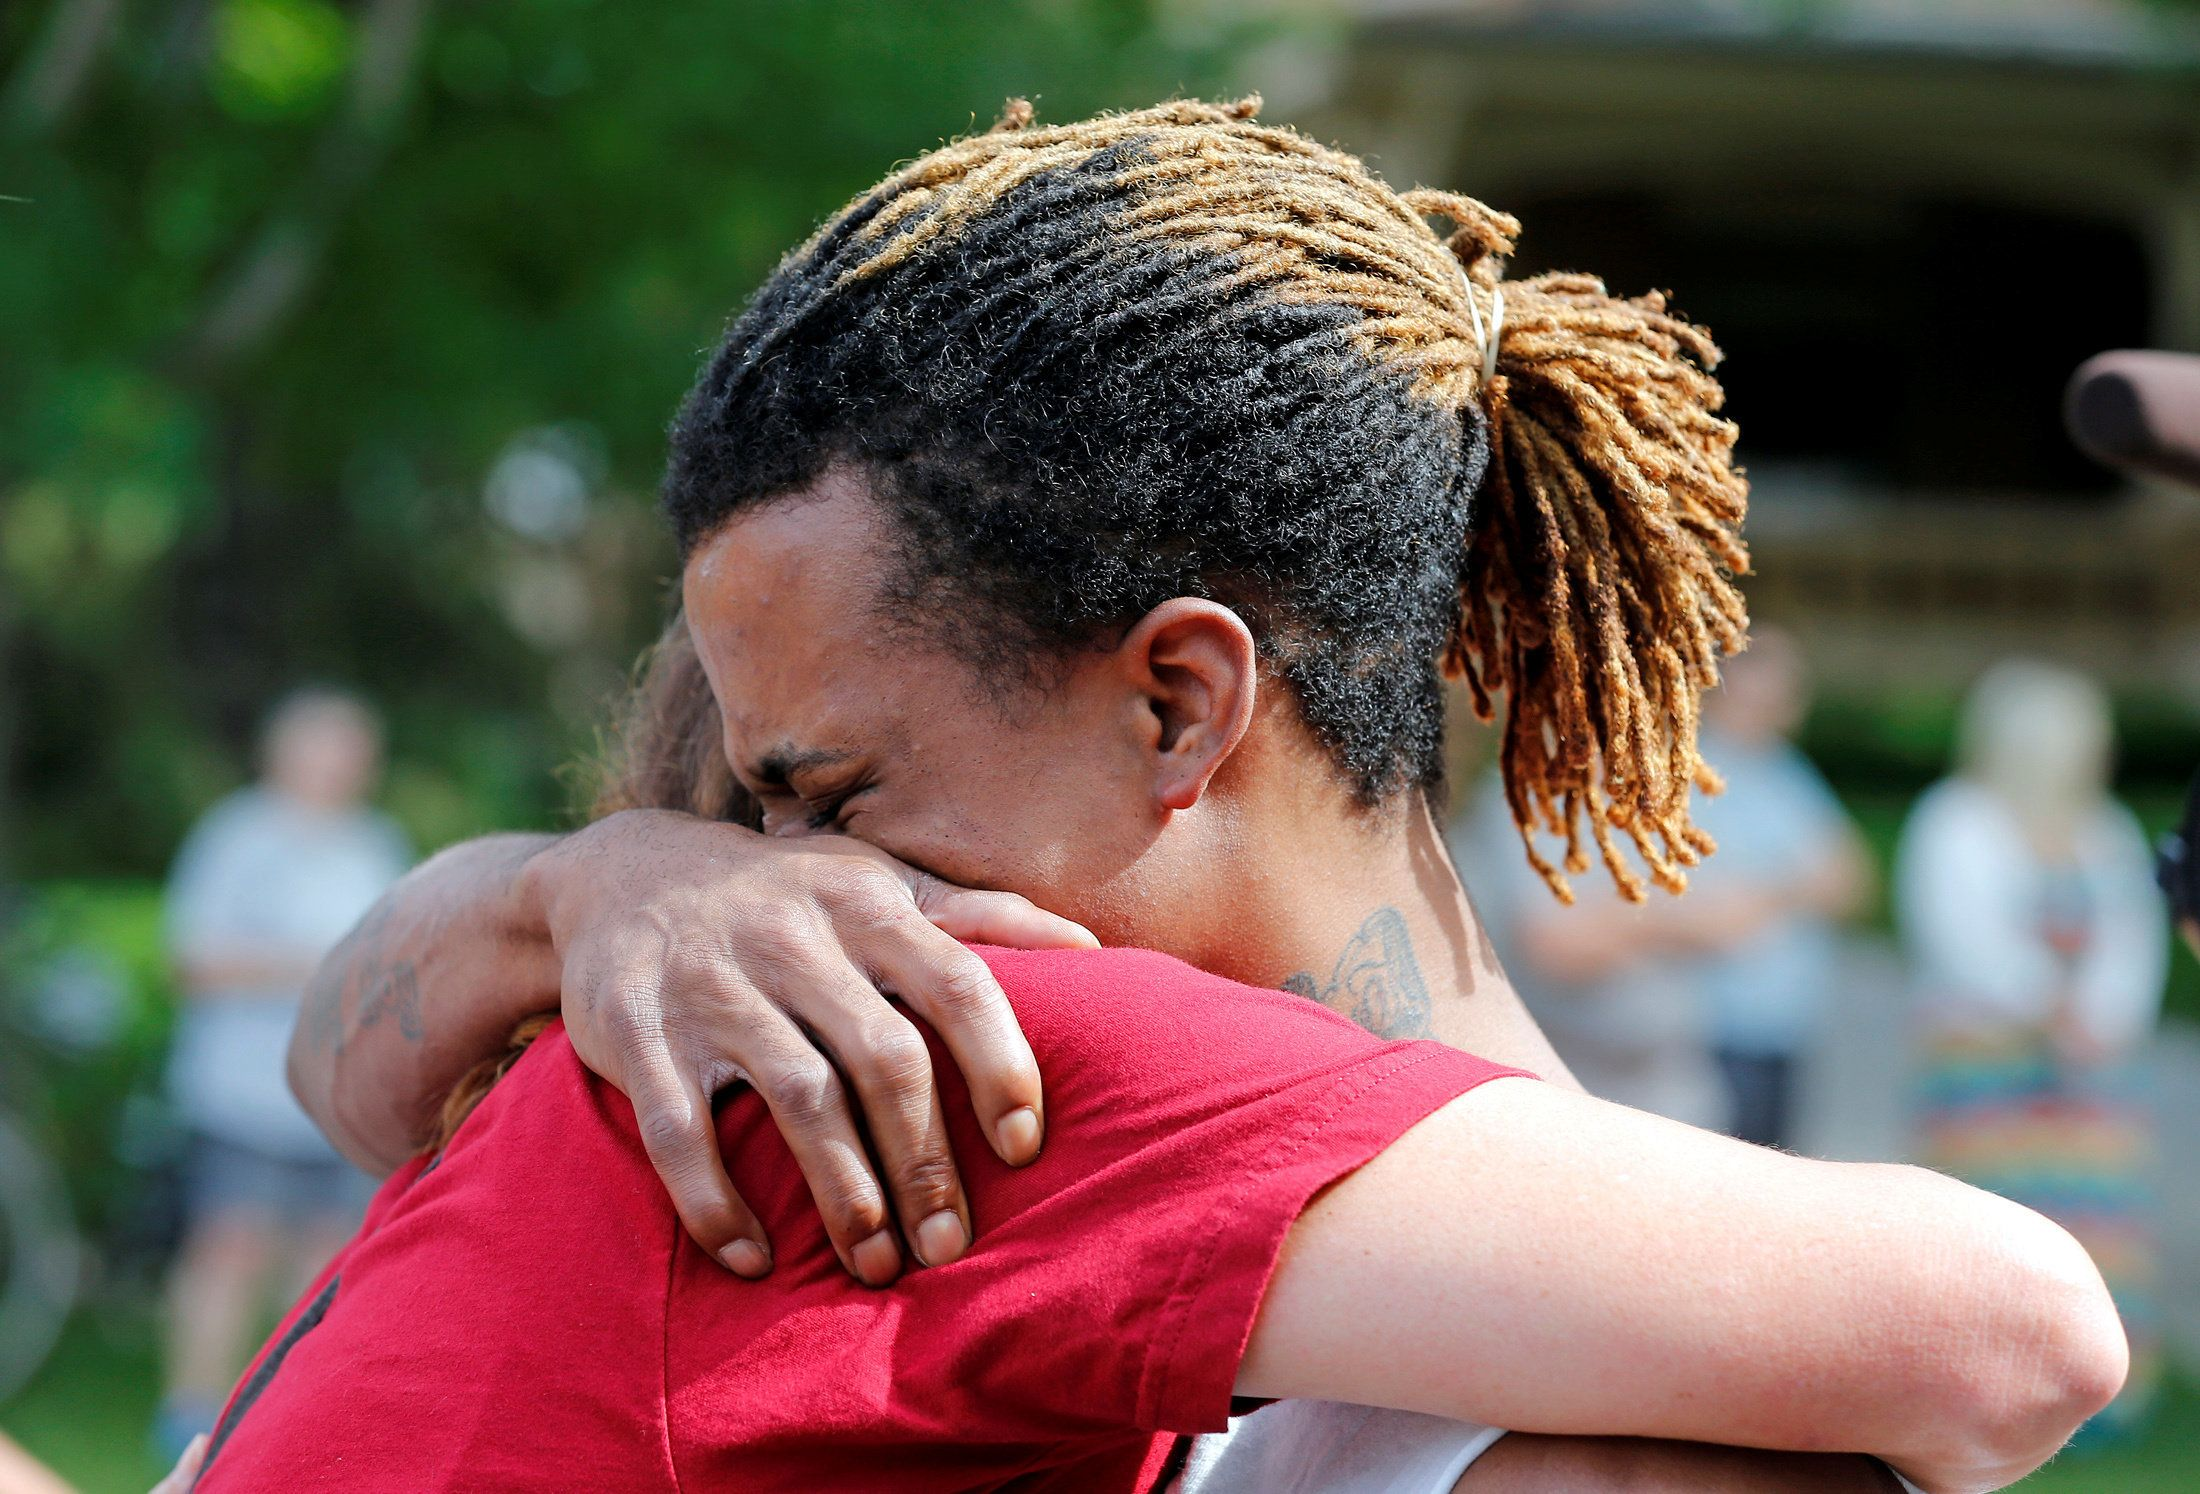 A cousin and a co-worker of Philando Castile try toconsole each other during a July 7 protestinSt. Paul, Mi